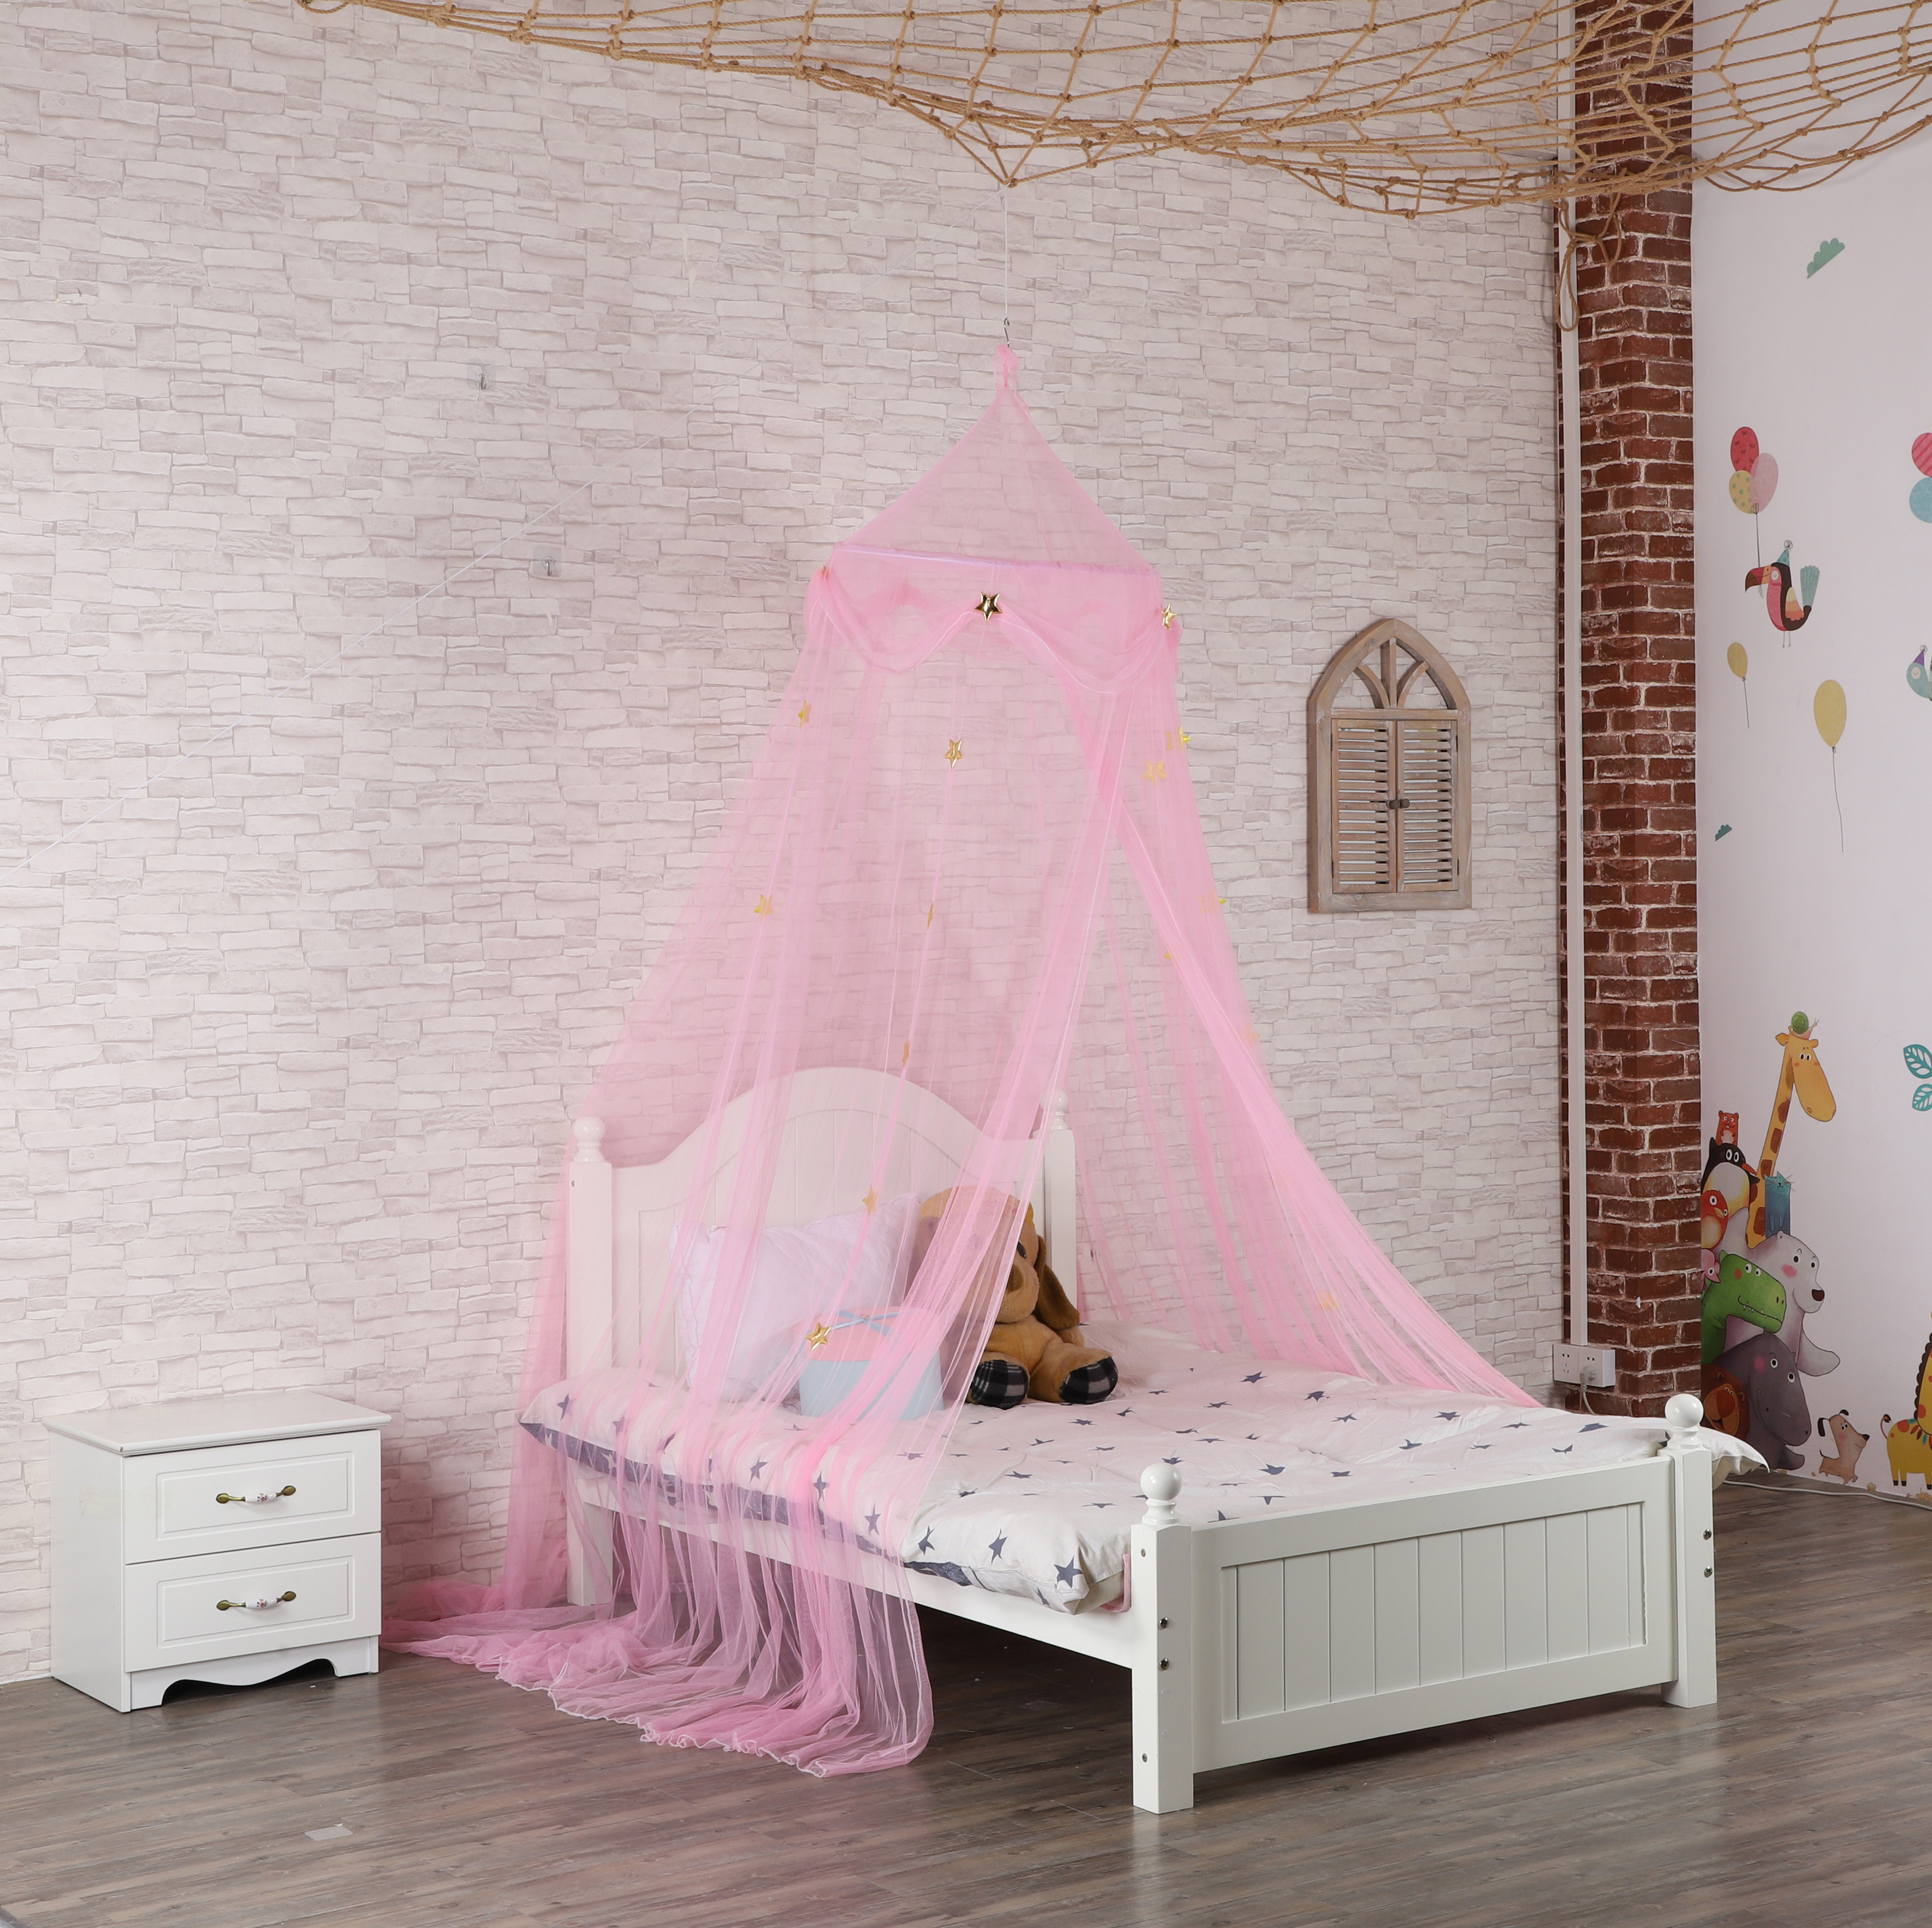 2020 Hot Selling Princess Style Gloden Star Decor Pink Hanging Mosquito Net